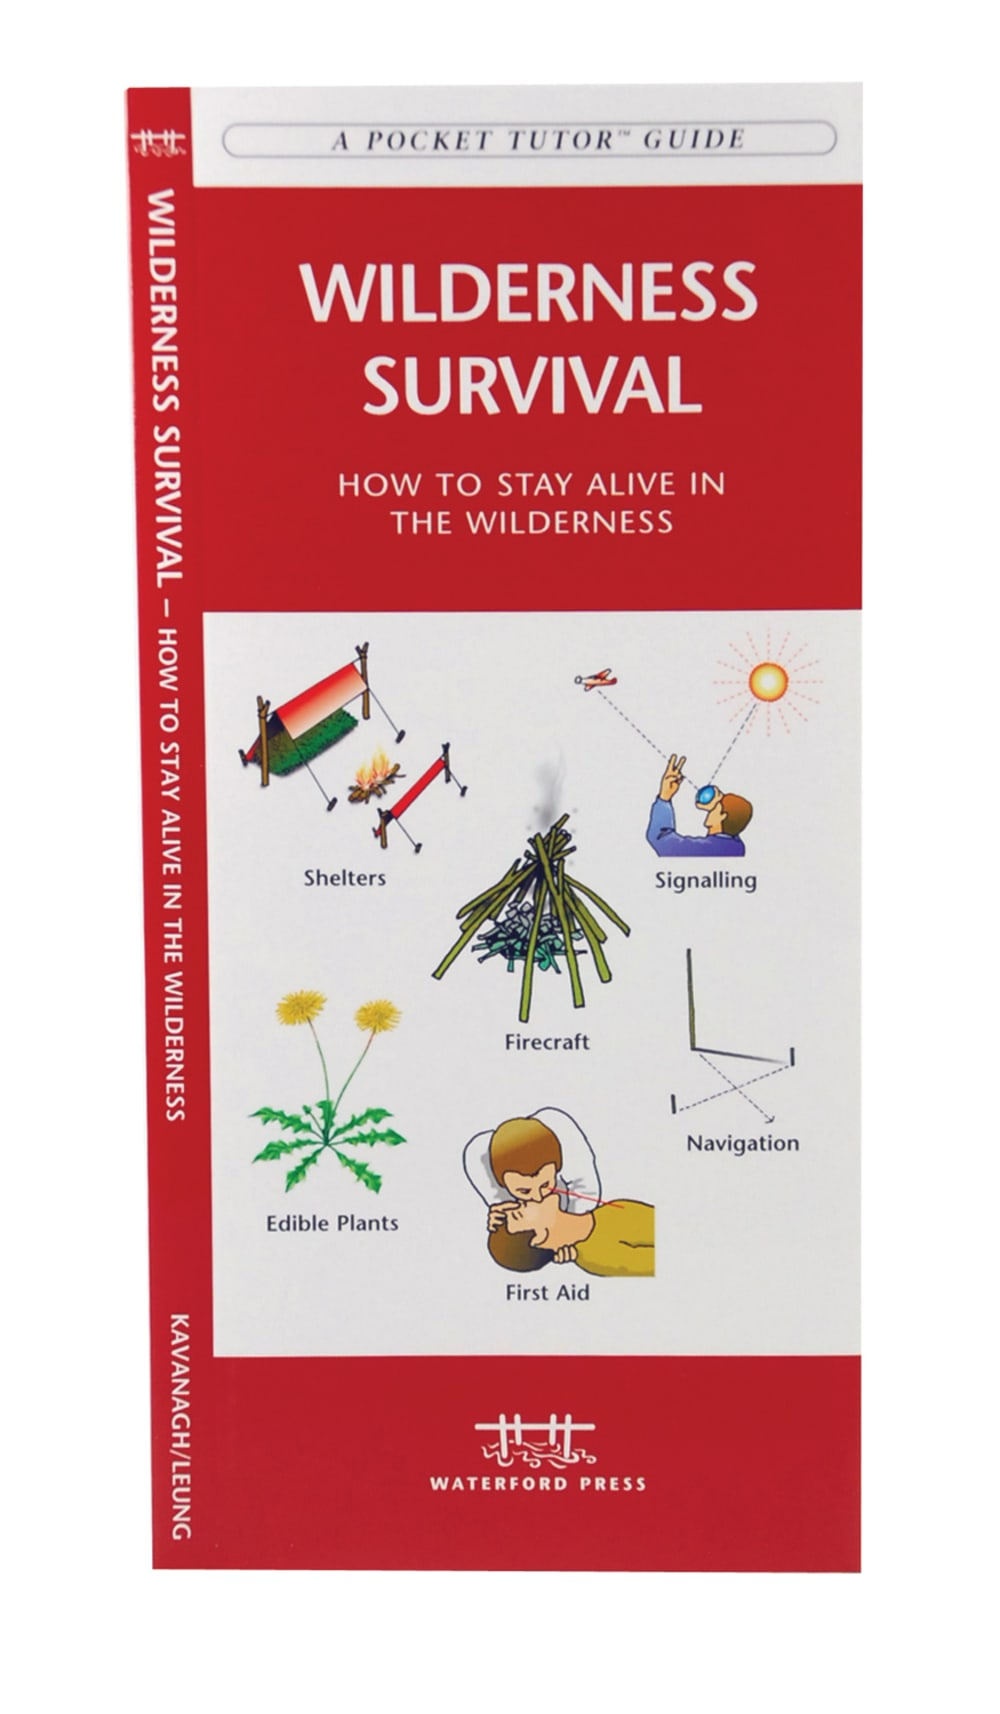 Wilderness Survival Pocket Guide - NONE